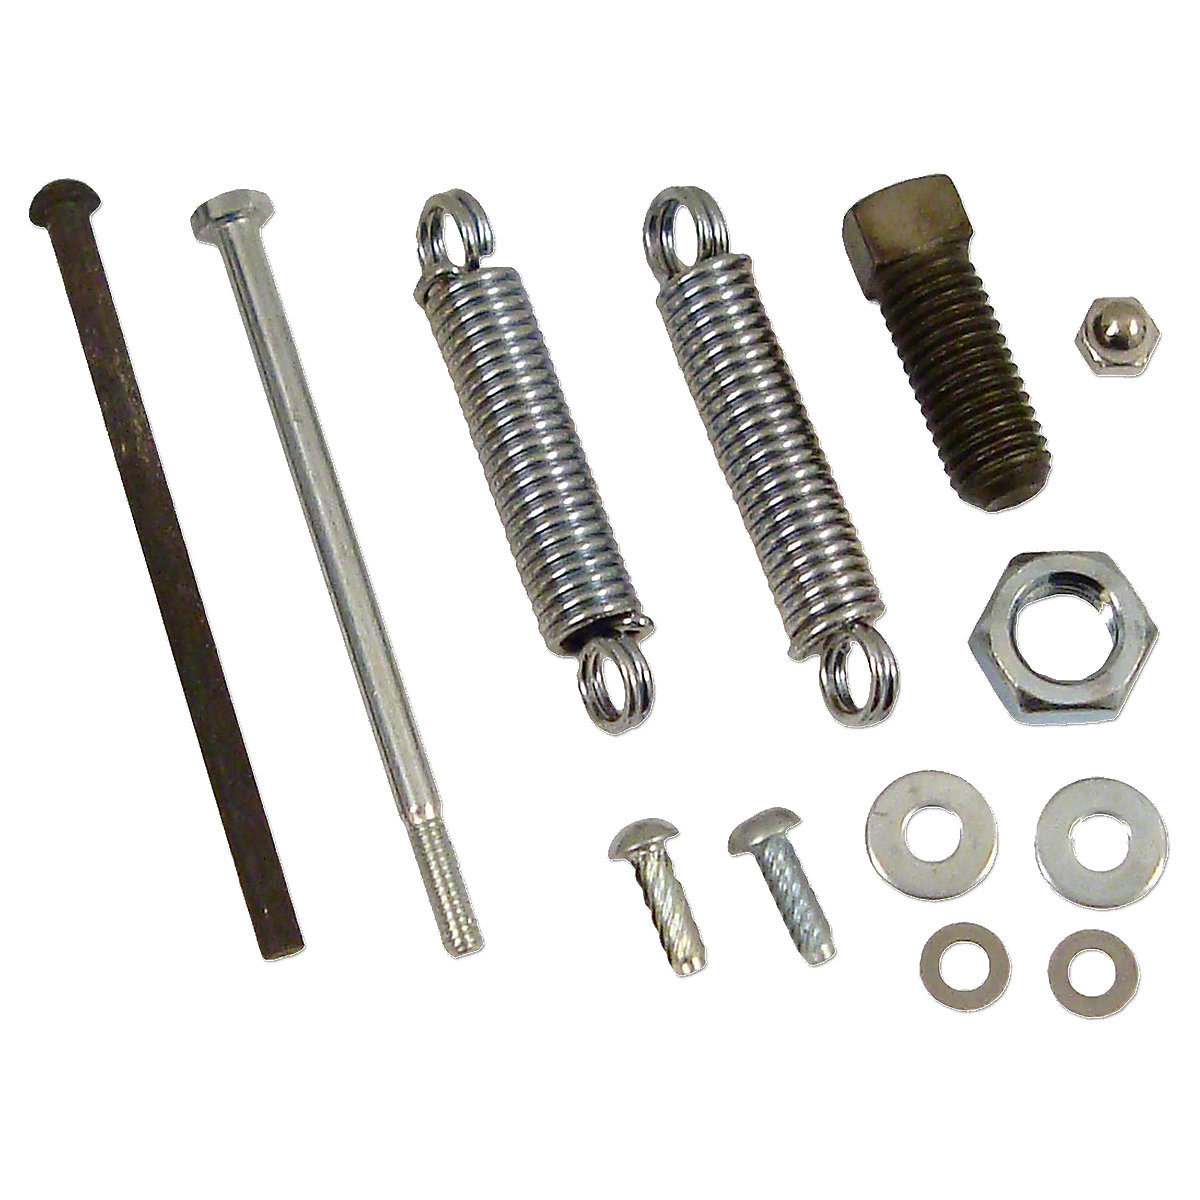 Snap Coupler Repair Kit For Allis Chalmers: 190XT, D10, D12, D14, D15, D17, D19, WD, WD45, 190.